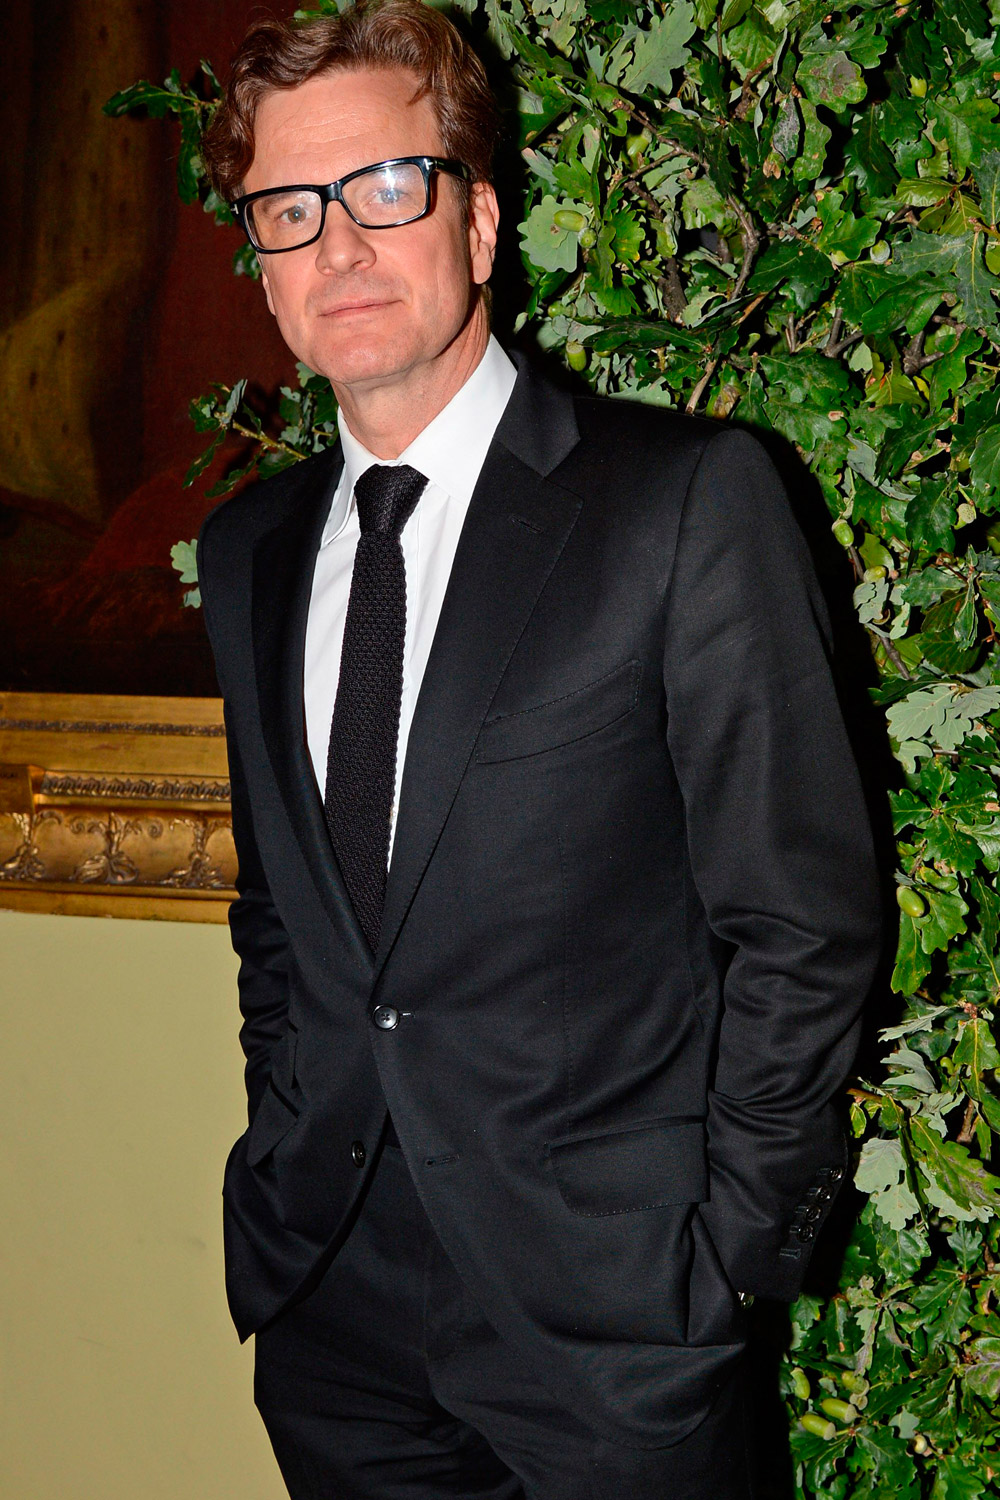 Colin Firth Reacts To THAT Bridget Jones News: 'I Didn't Cry'